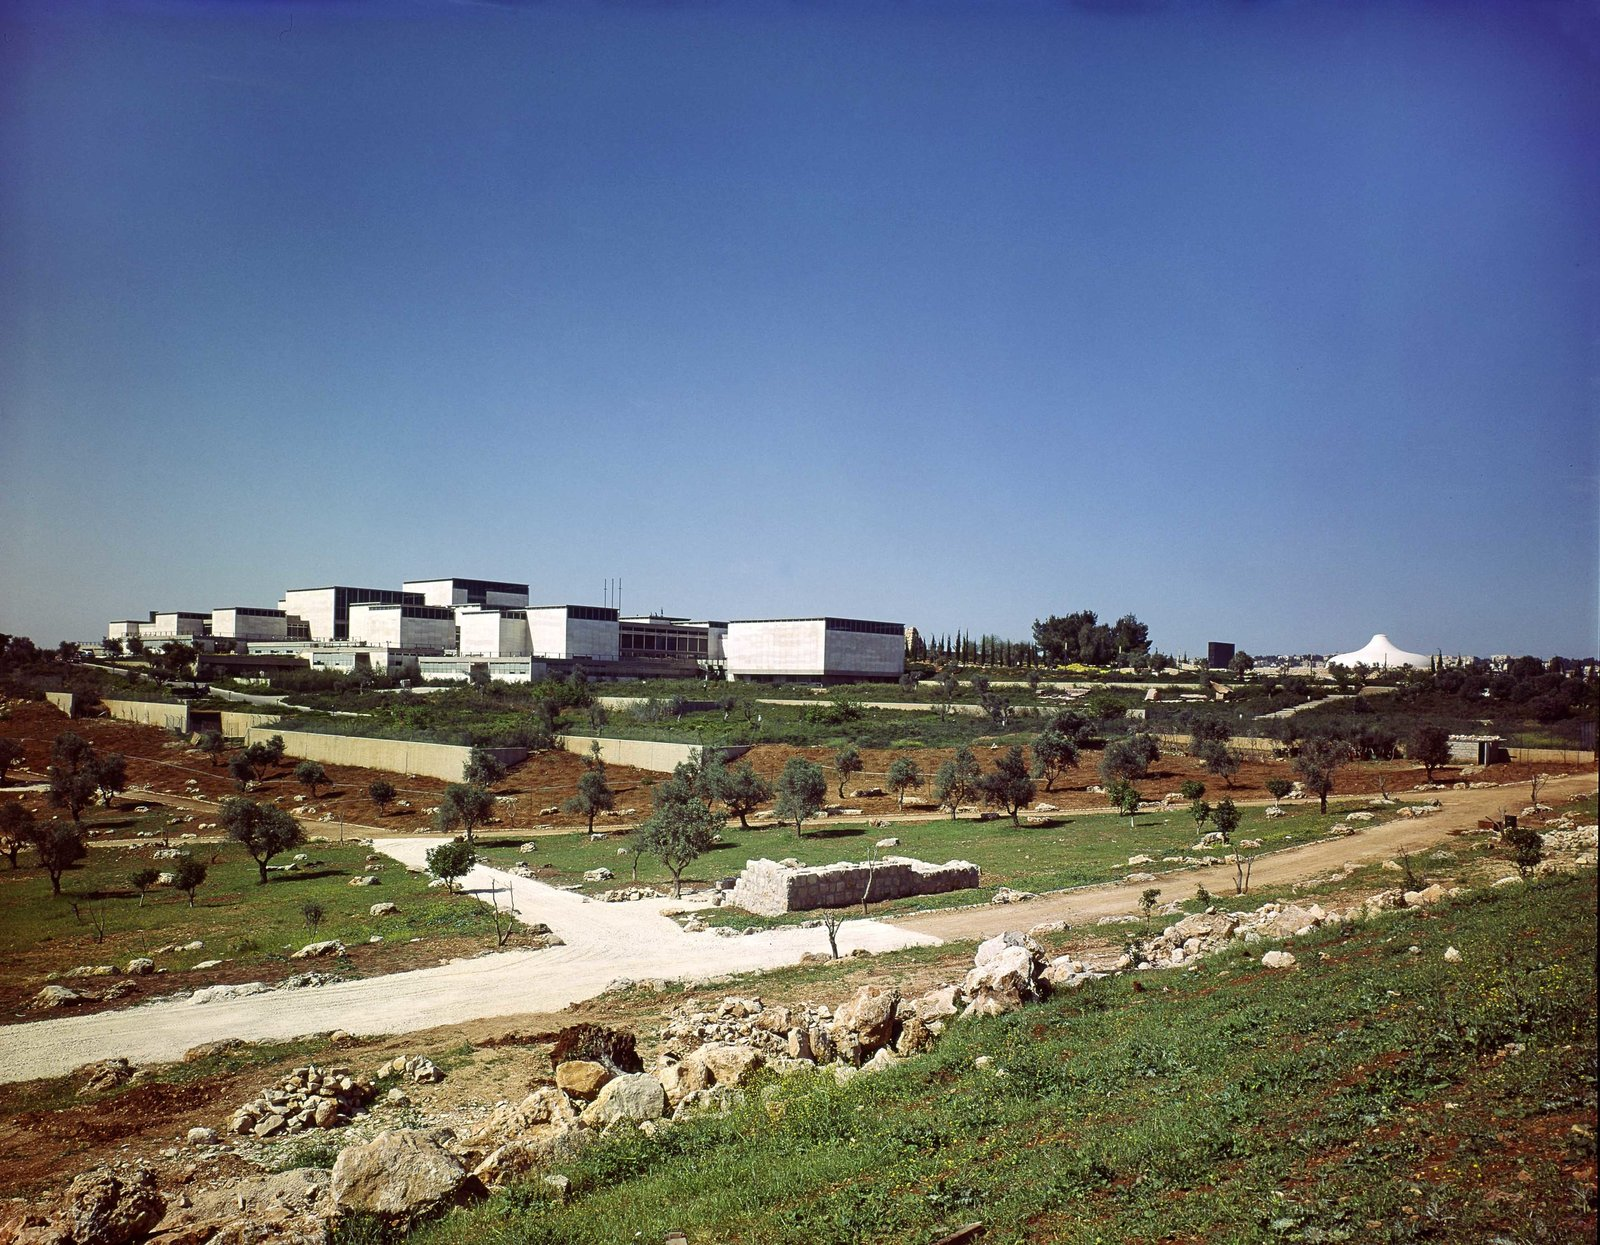 Each module is constructed of form-cast concrete clad with Jerusalem stone, and features clerestory windows that surround the perimeter.  This is What Design Looked Like in Israel in 1965 by Allie Weiss